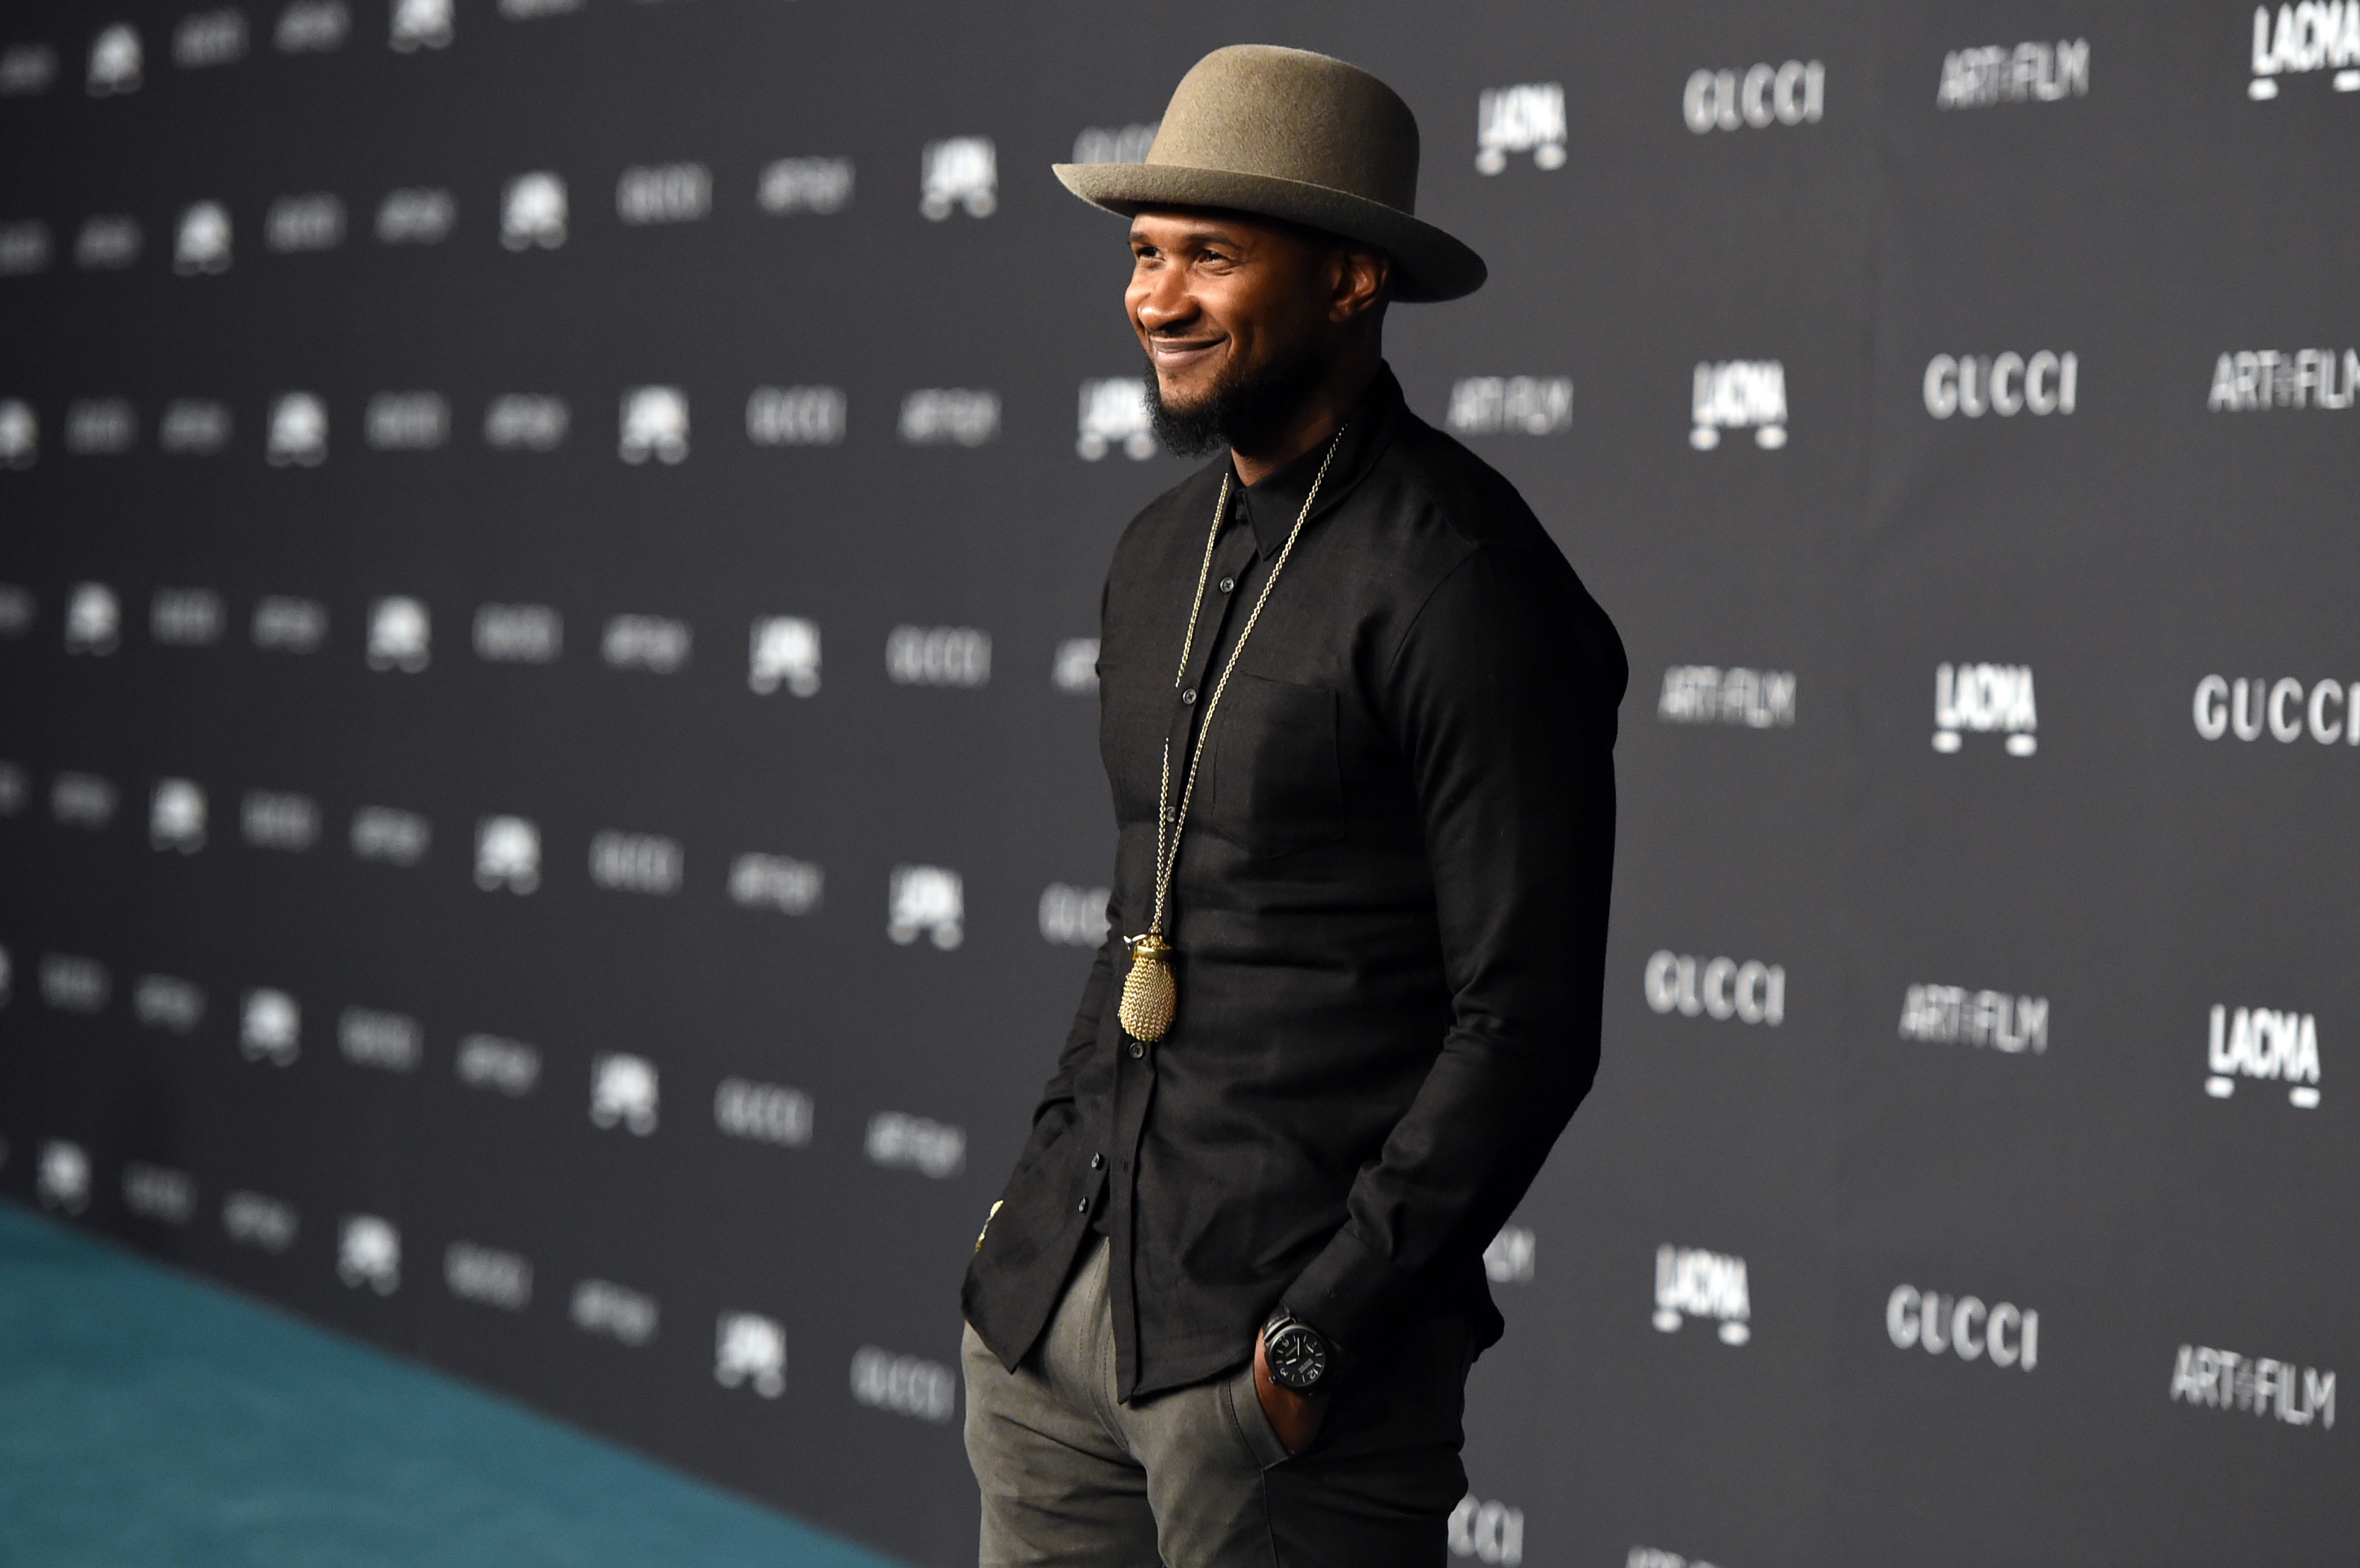 LOS ANGELES, CA - NOVEMBER 07:  Recording artist Usher attends LACMA 2015 Art+Film Gala Honoring James Turrell and Alejandro G Iñárritu, Presented by Gucci at LACMA on November 7, 2015 in Los Angeles, California.  (Photo by Jason Merritt/Getty Images  for LACMA)